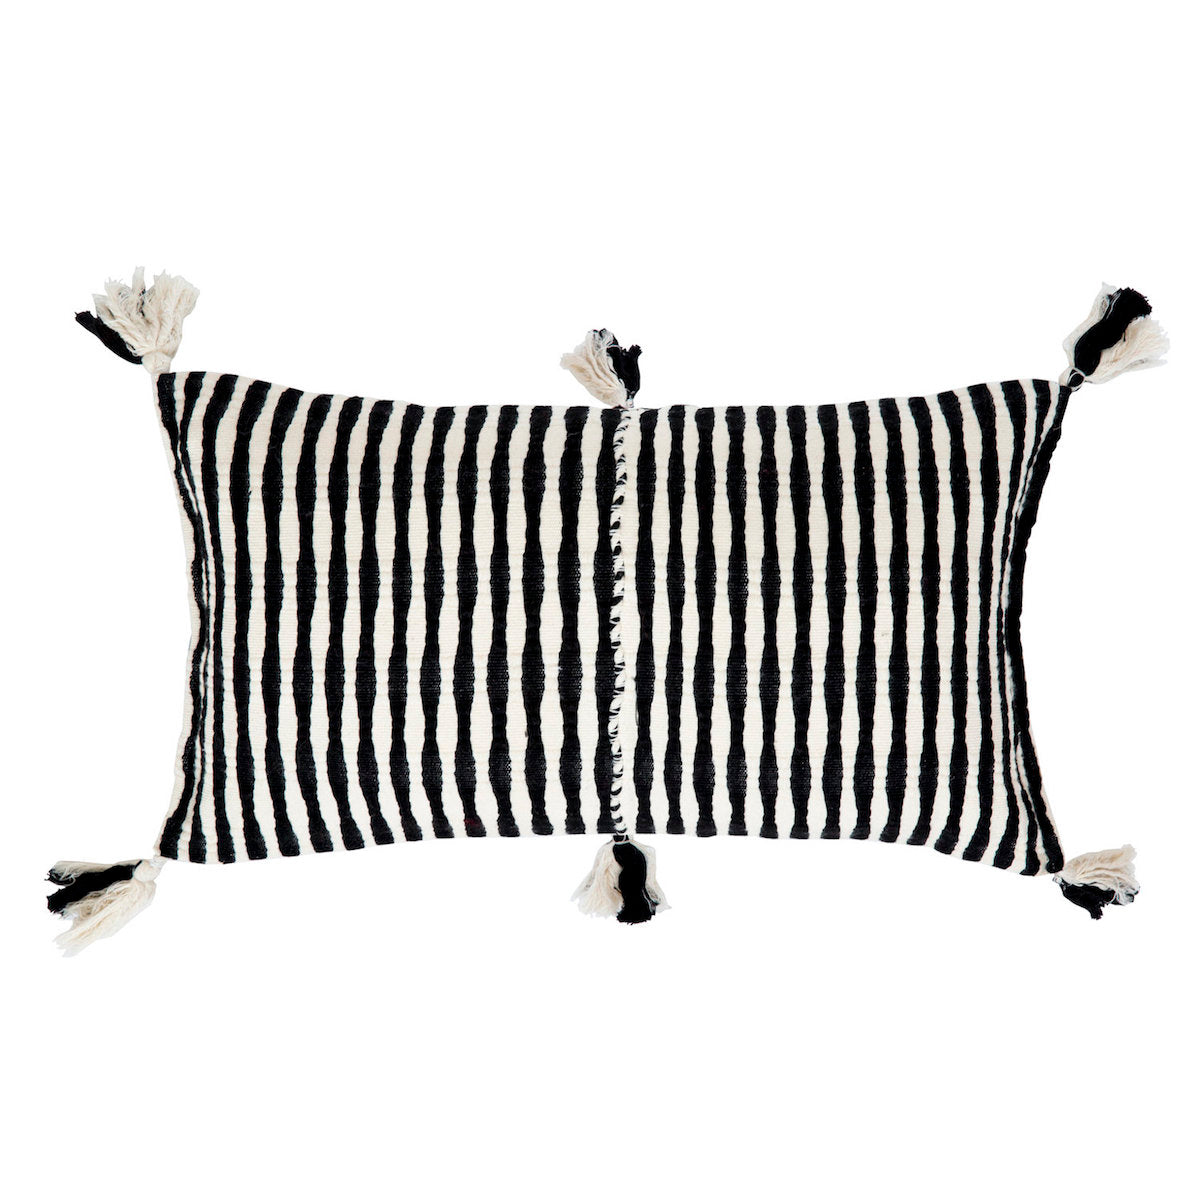 Antigua Pillow - Black